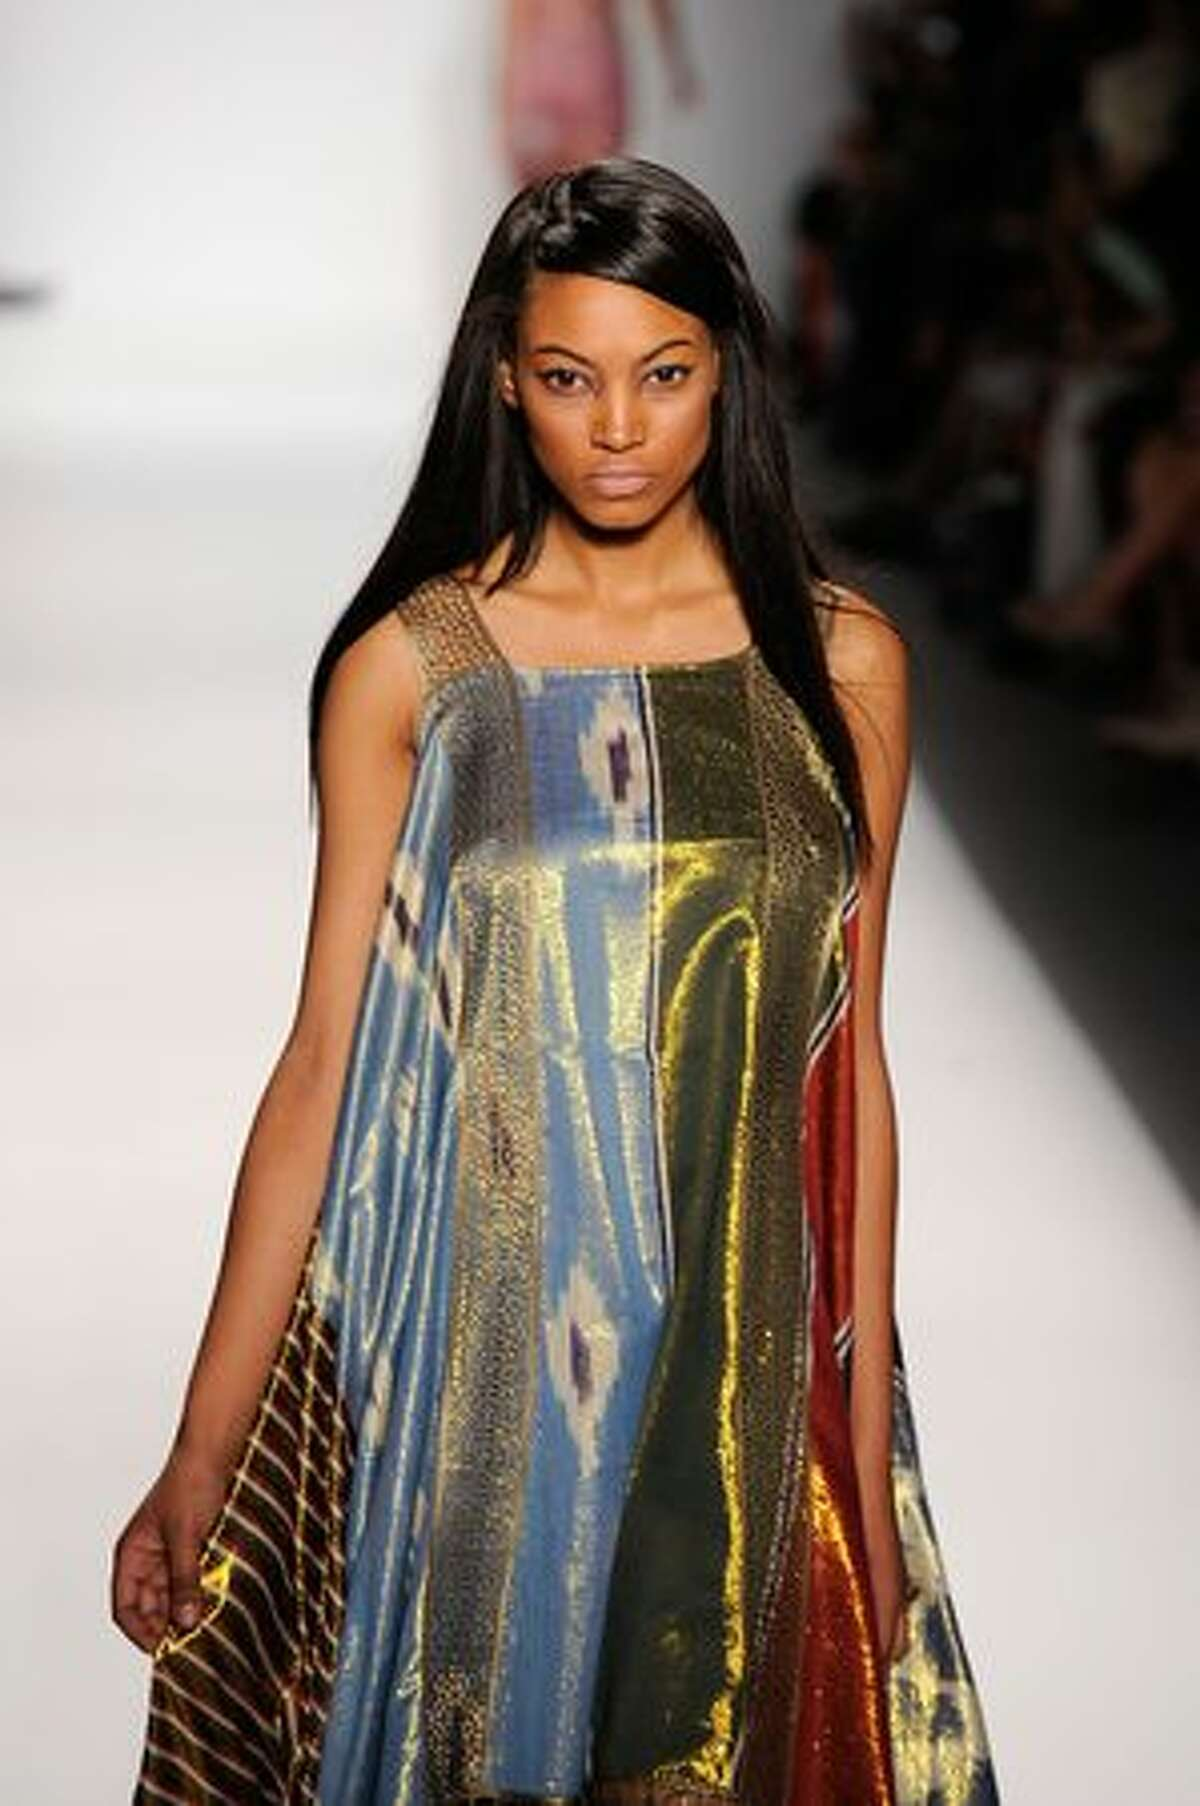 A model walks the runway at the Guli Collections Spring 2011 fashion show during Mercedes-Benz Fashion Week at The Studio at Lincoln Center in New York City.